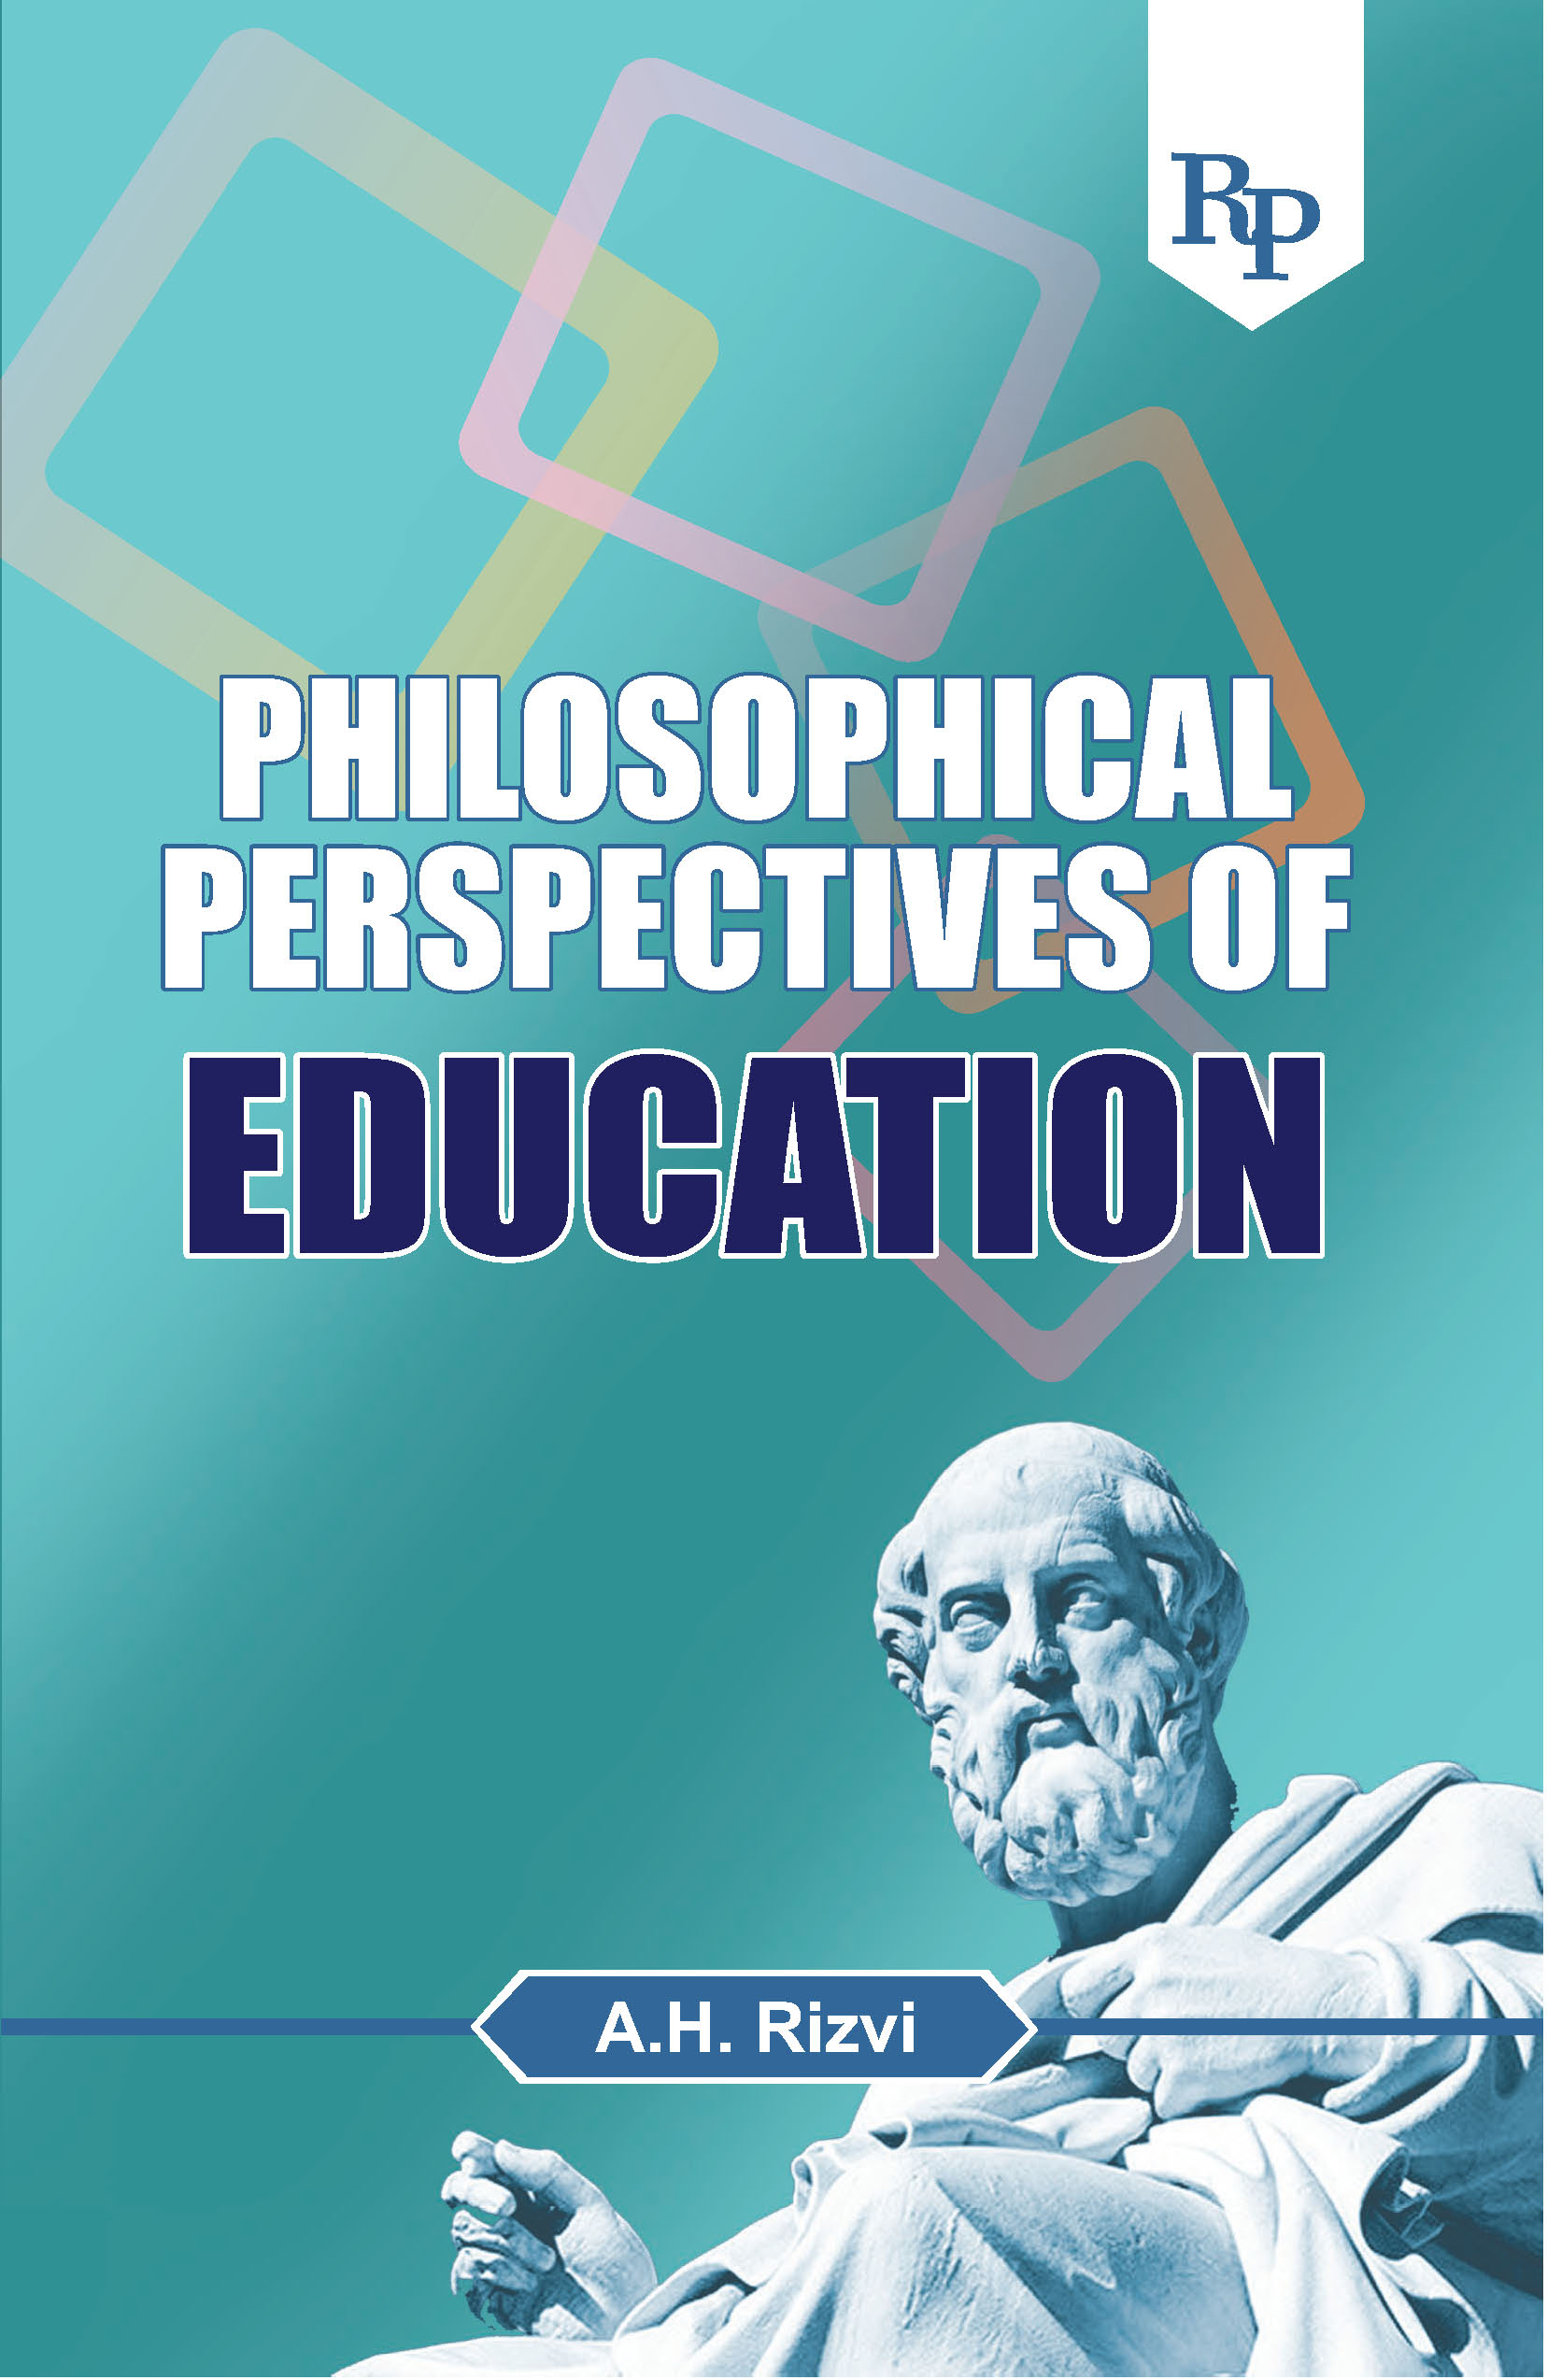 Philosophical Perspectives of Education COVER.jpg